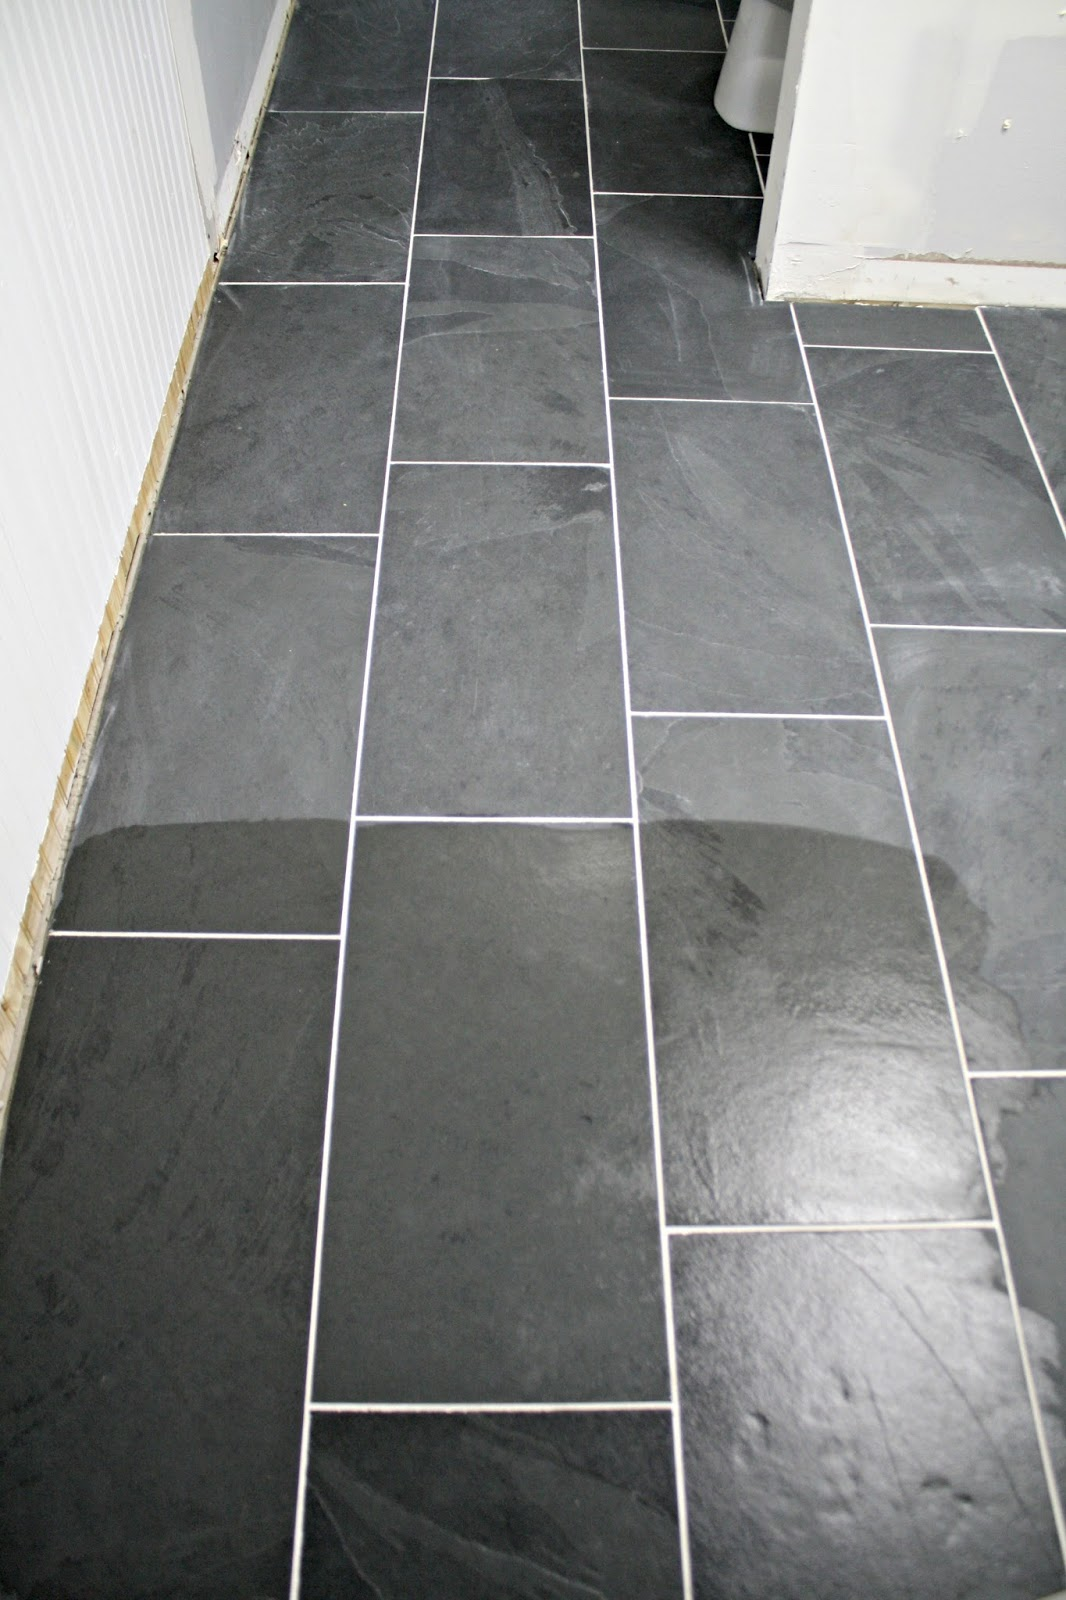 Bathroom Floor Tiles Sealing : How to tile a bathroom floor it s done white homes